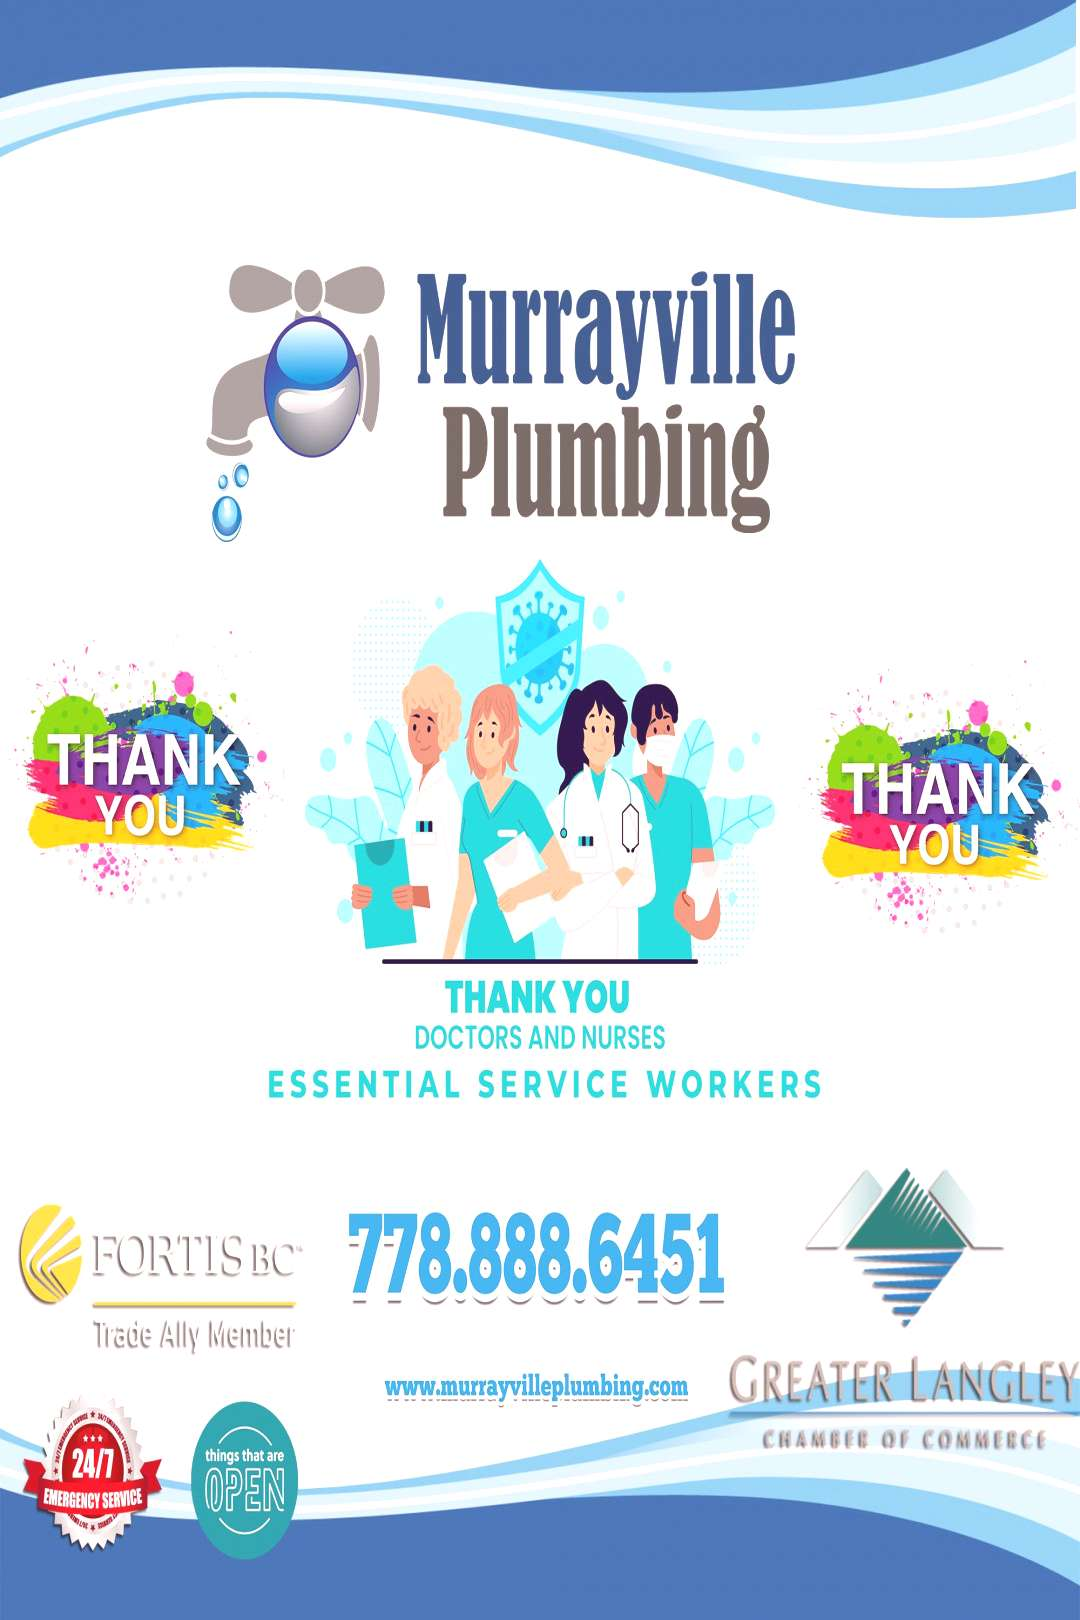 Thank you essential workers. We would like to say to all the out there helping to keep things movin